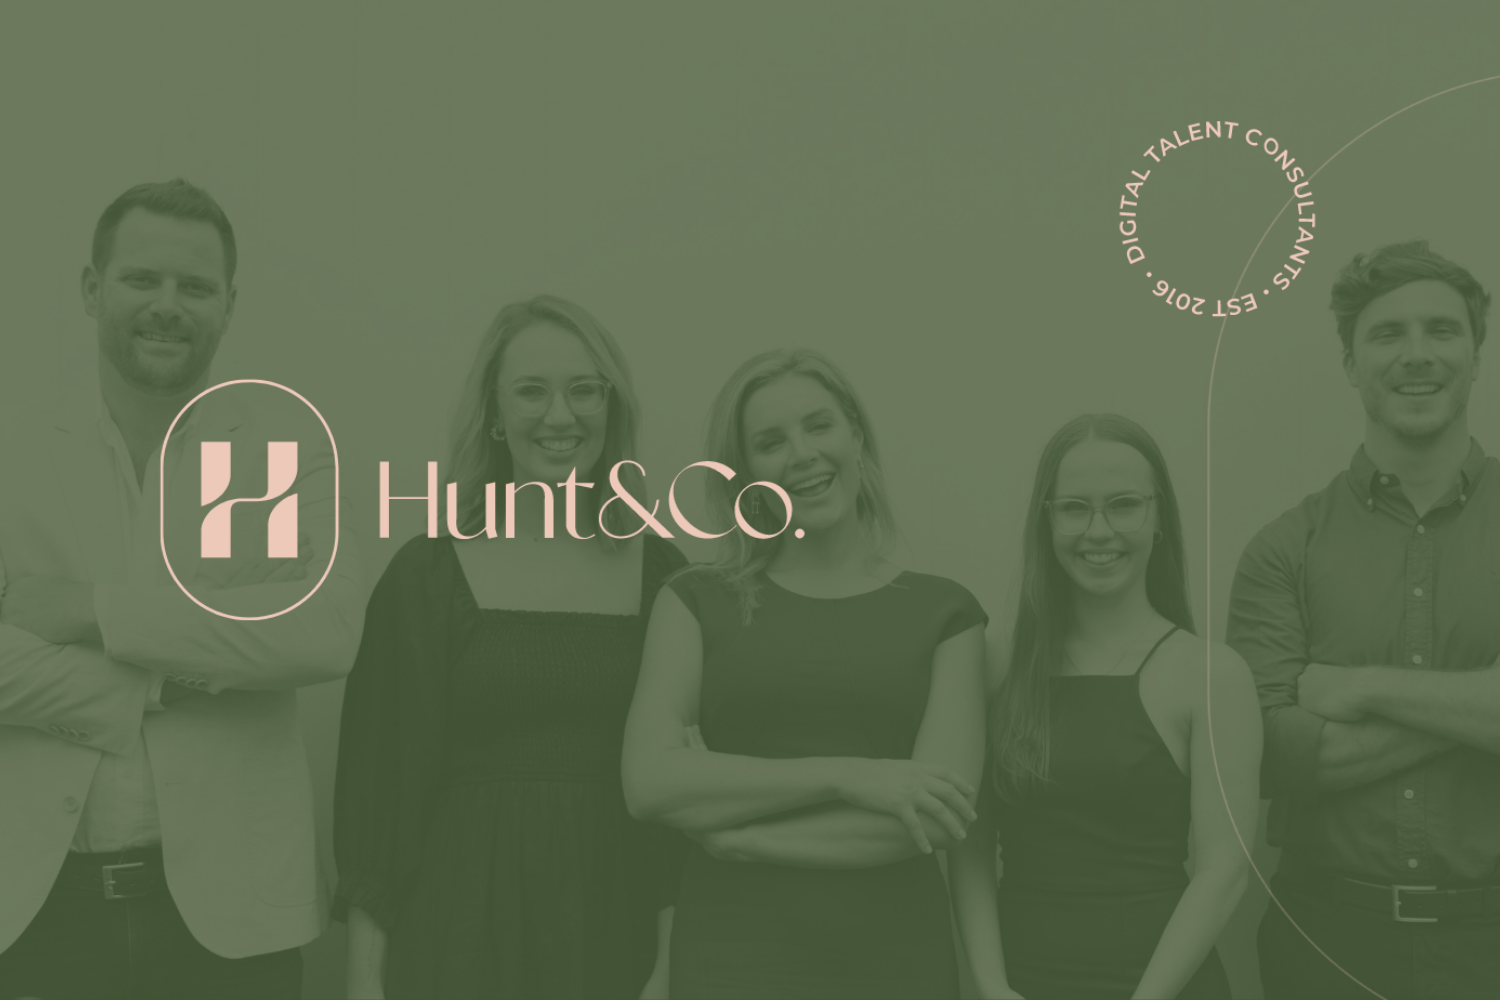 Digital Talent Co. has rebranded to Hunt & Co. Consulting